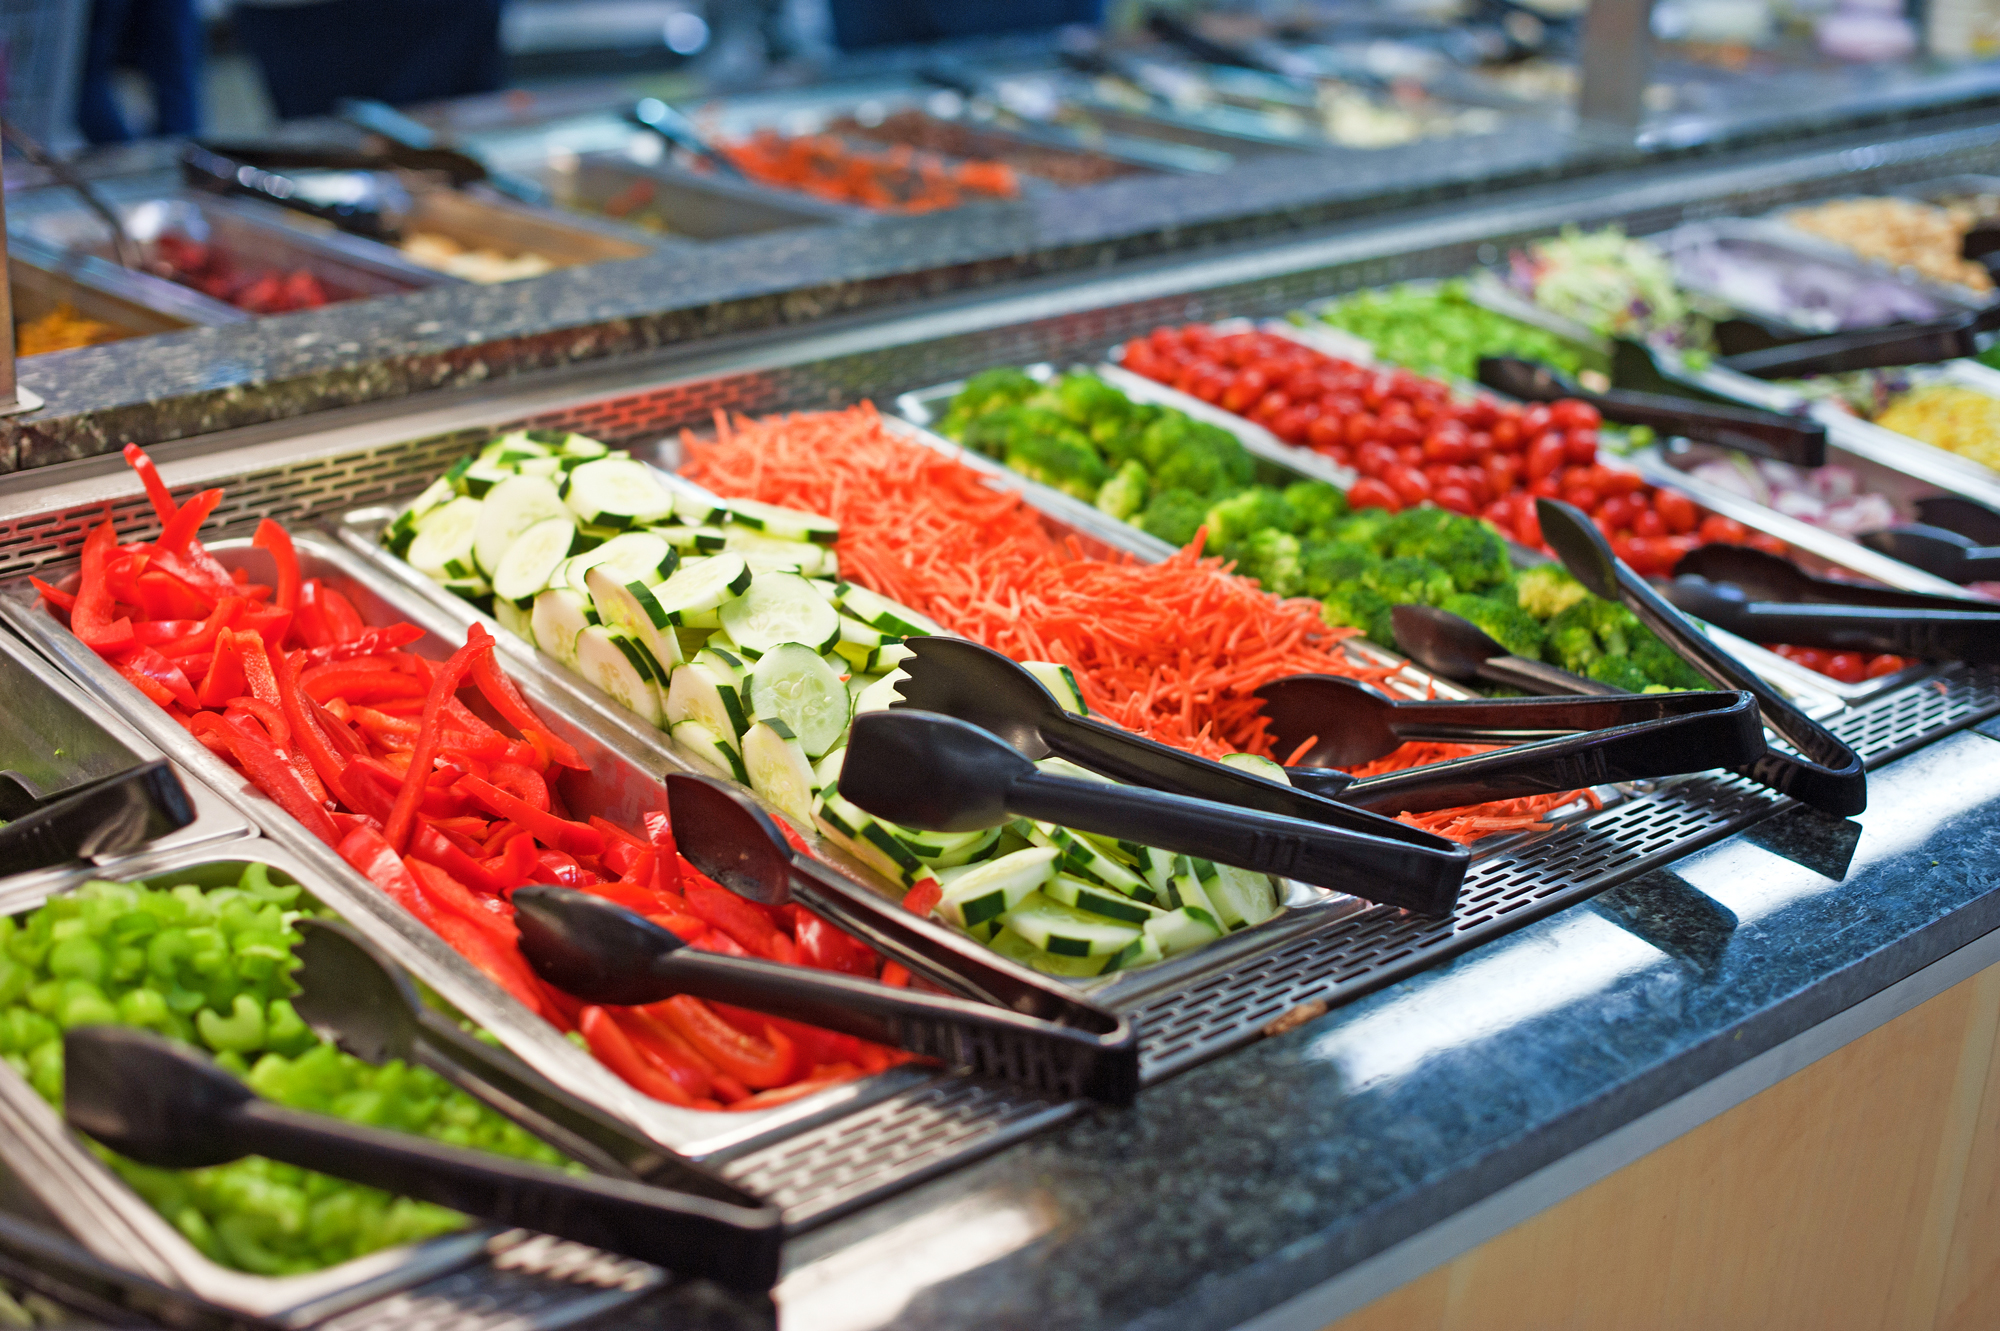 Supermarkets Don't Know What To Do With Their Salad Bars